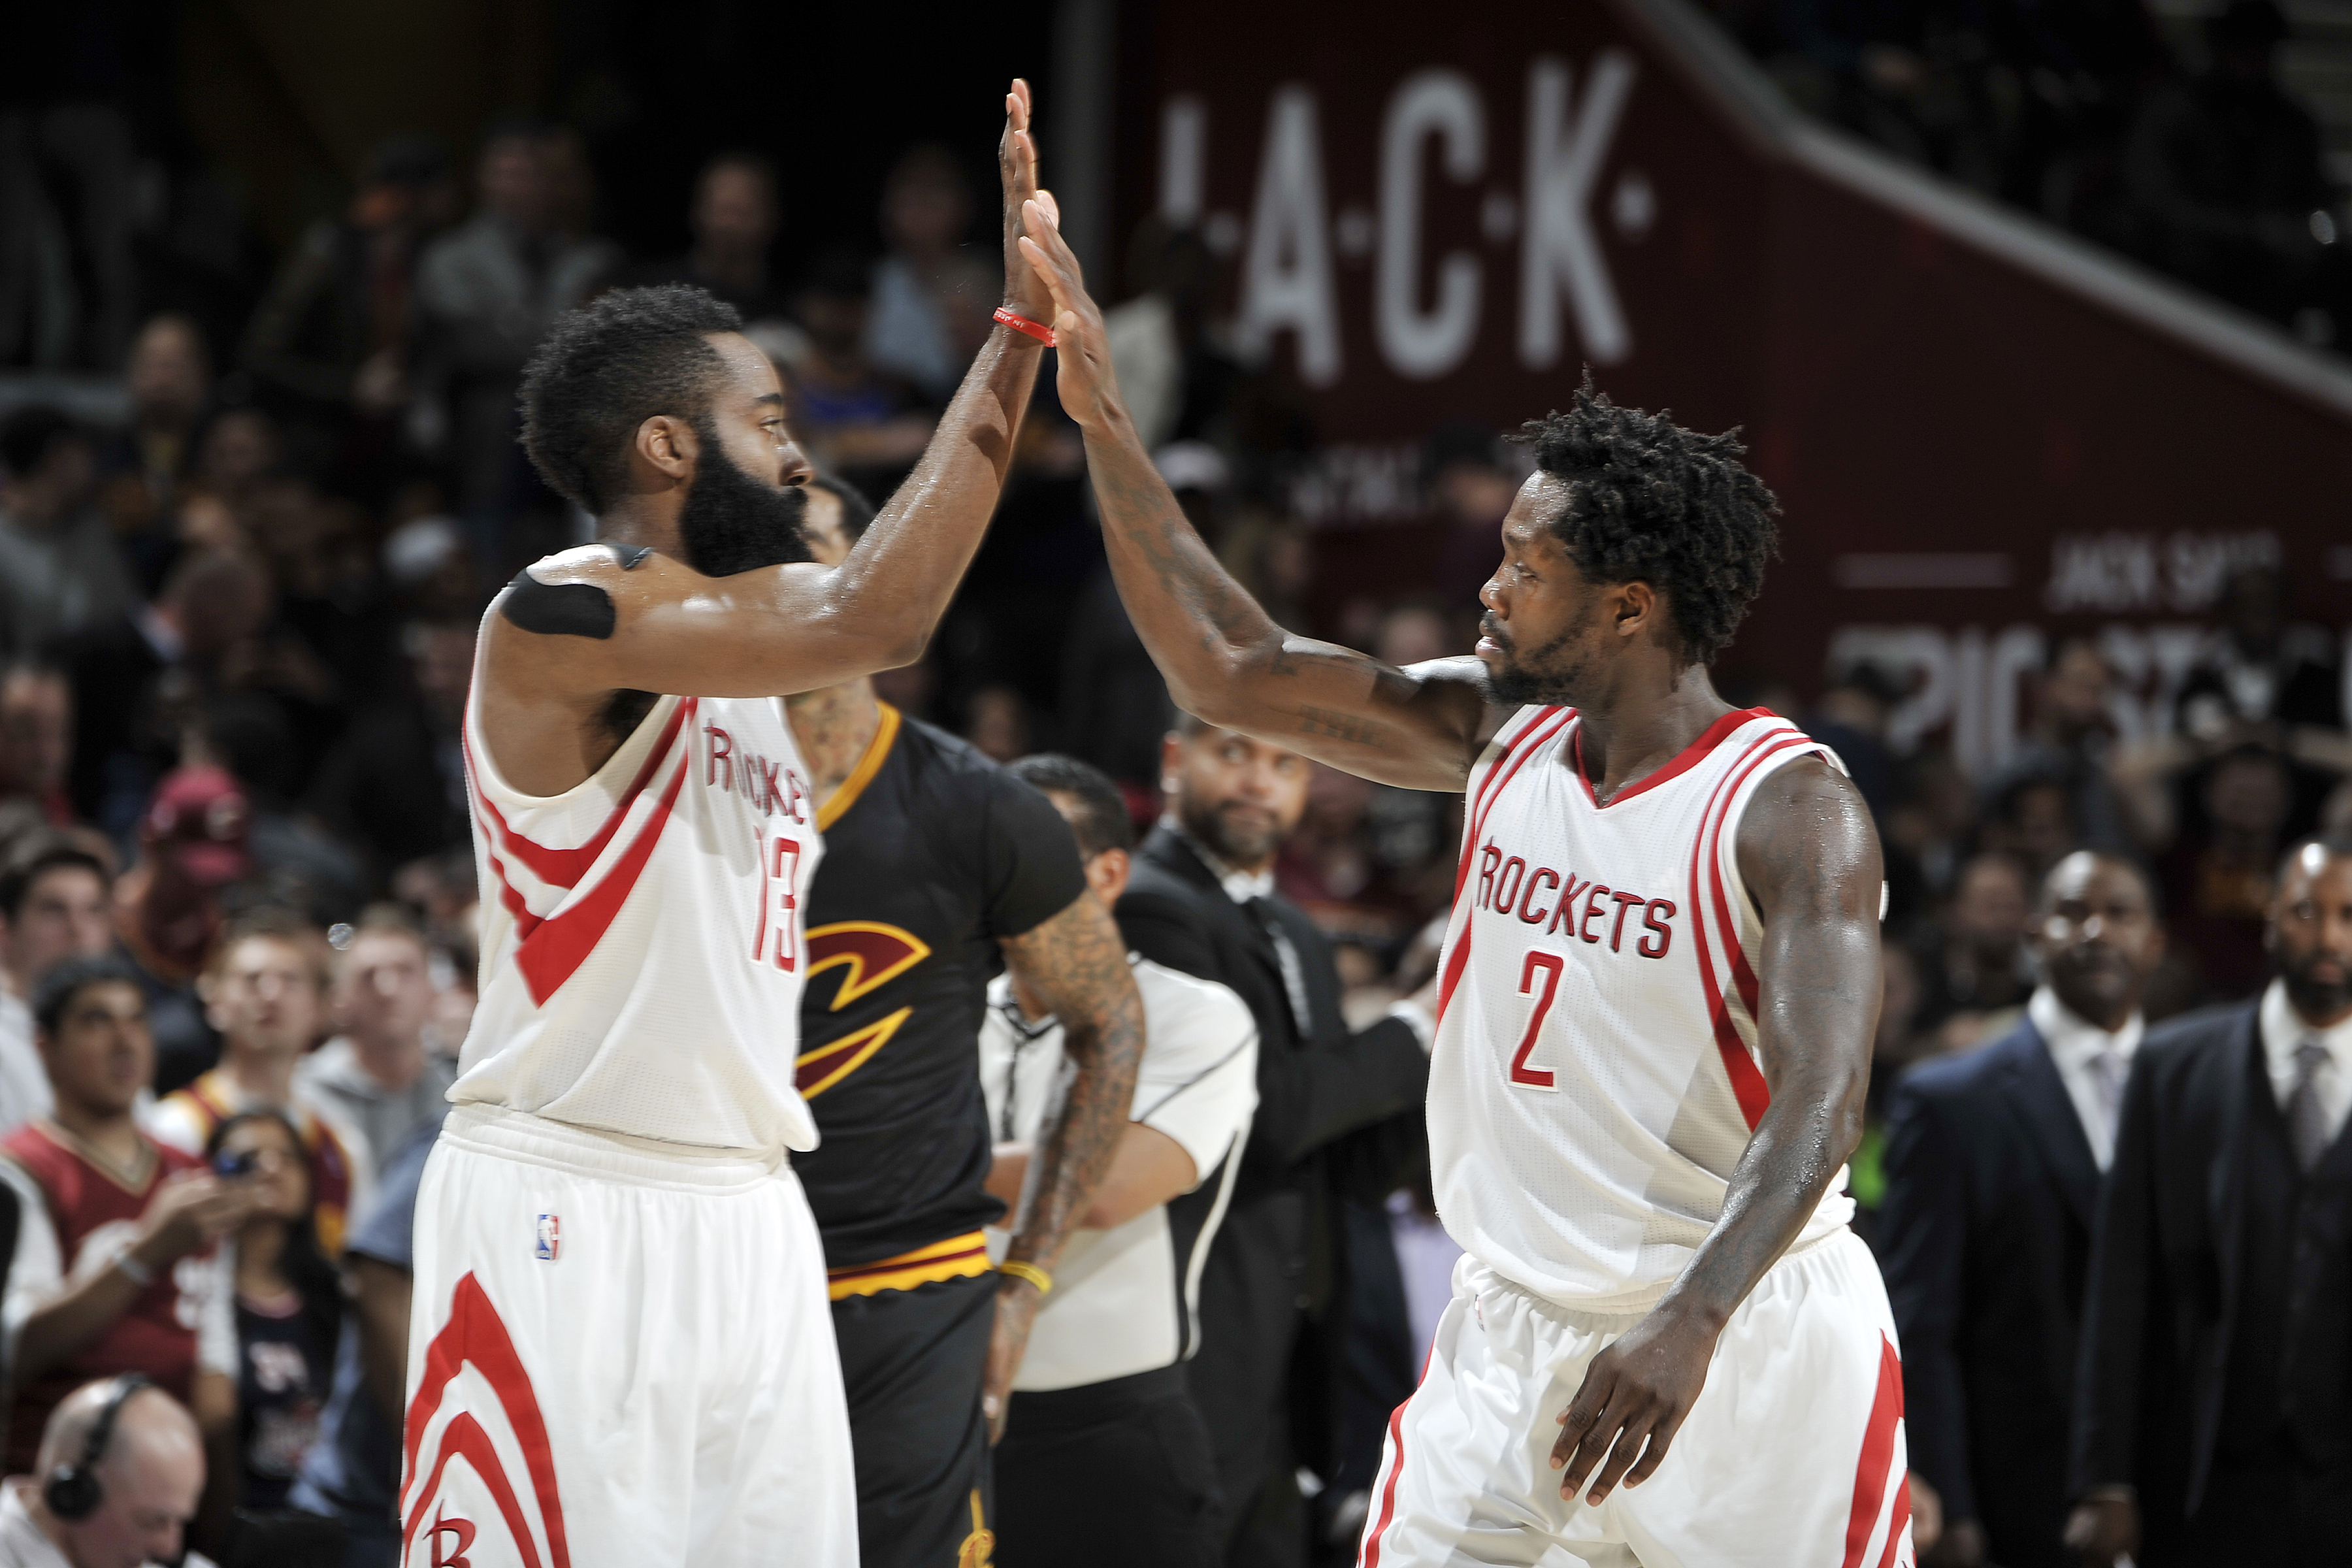 CLEVELAND, OH - MARCH 29:  James Harden #13 of the Houston Rockets shakes hands with Patrick Beverley #2 of the Houston Rockets during the game against the Cleveland Cavaliers on March 29, 2016 at Quicken Loans Arena in Cleveland, Ohio. (Photo by David Li